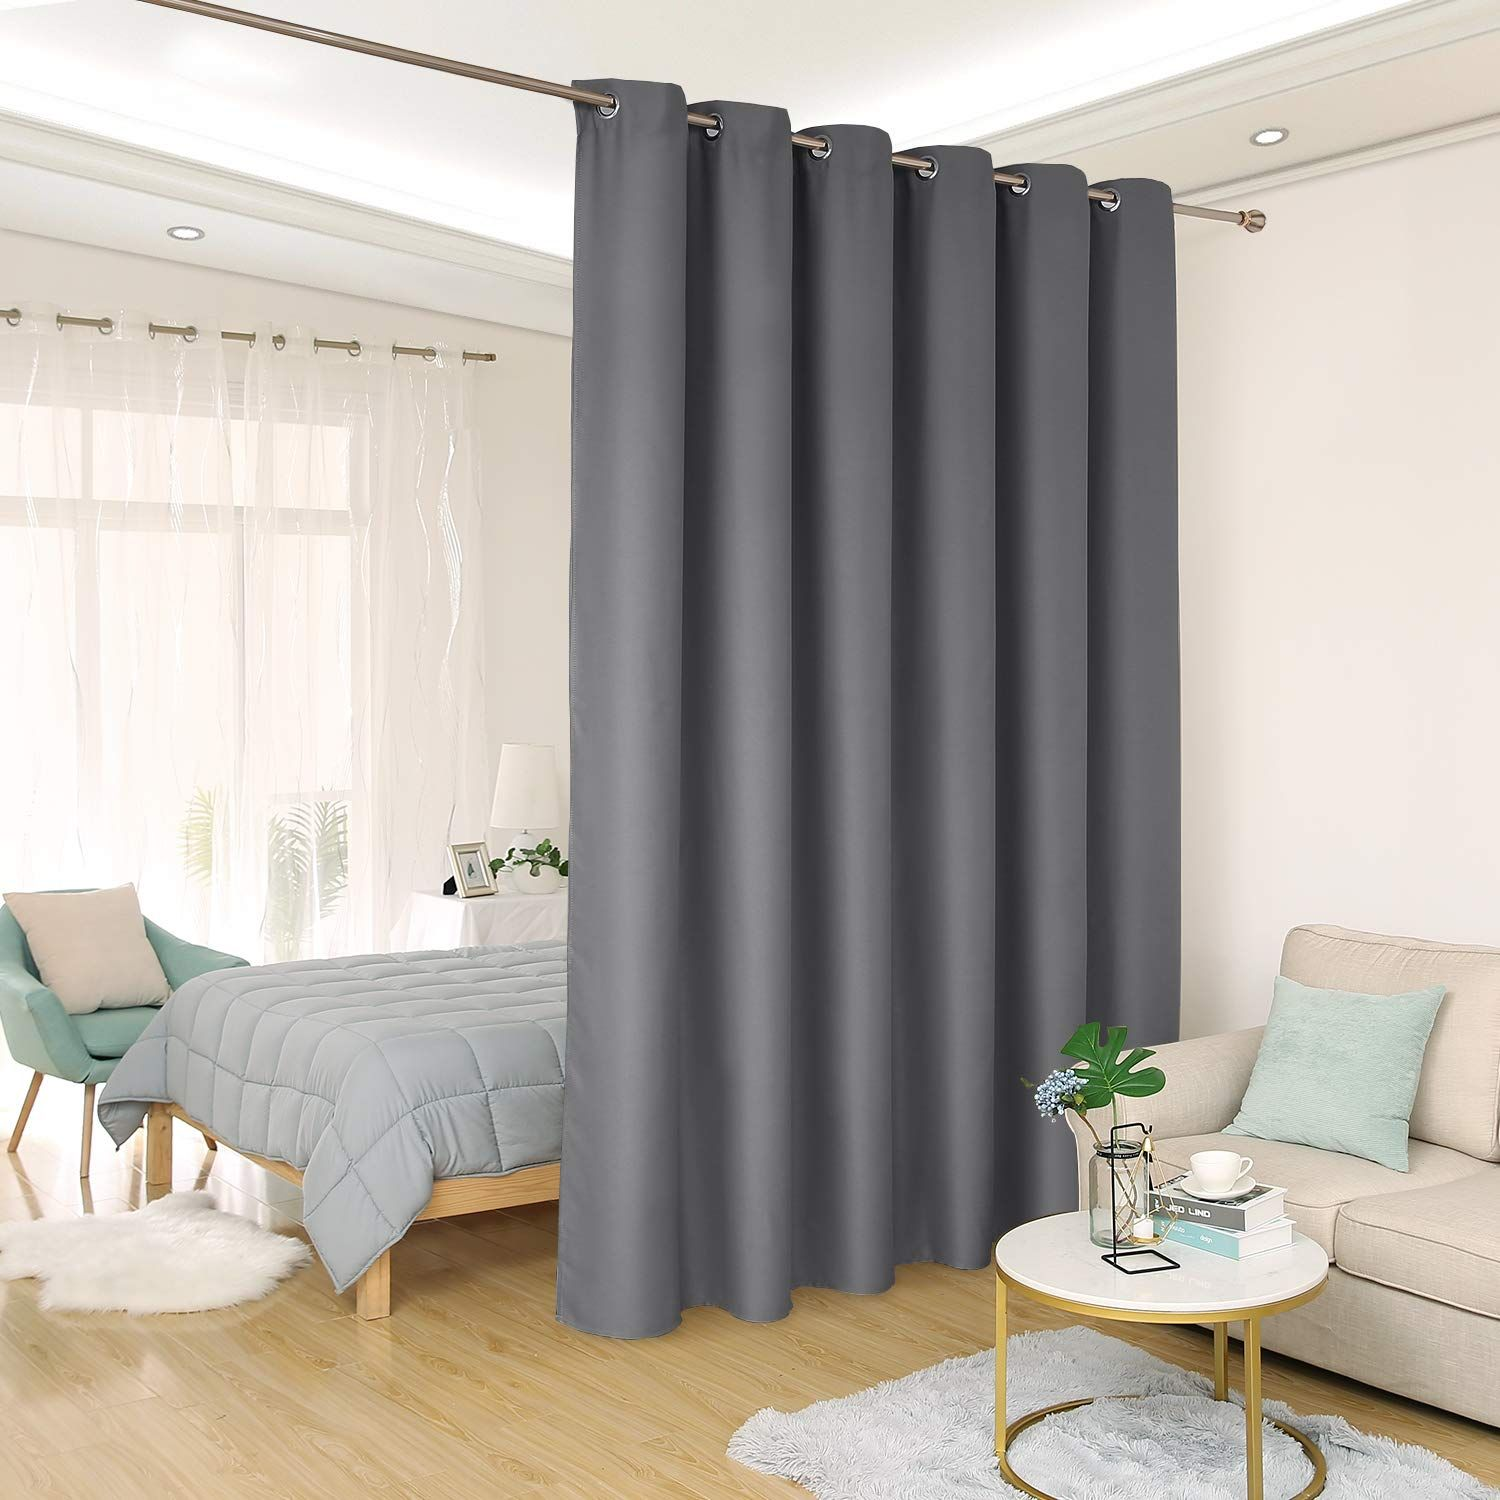 Amazon Com Deconovo Privacy Room Divider Curtain Thermal